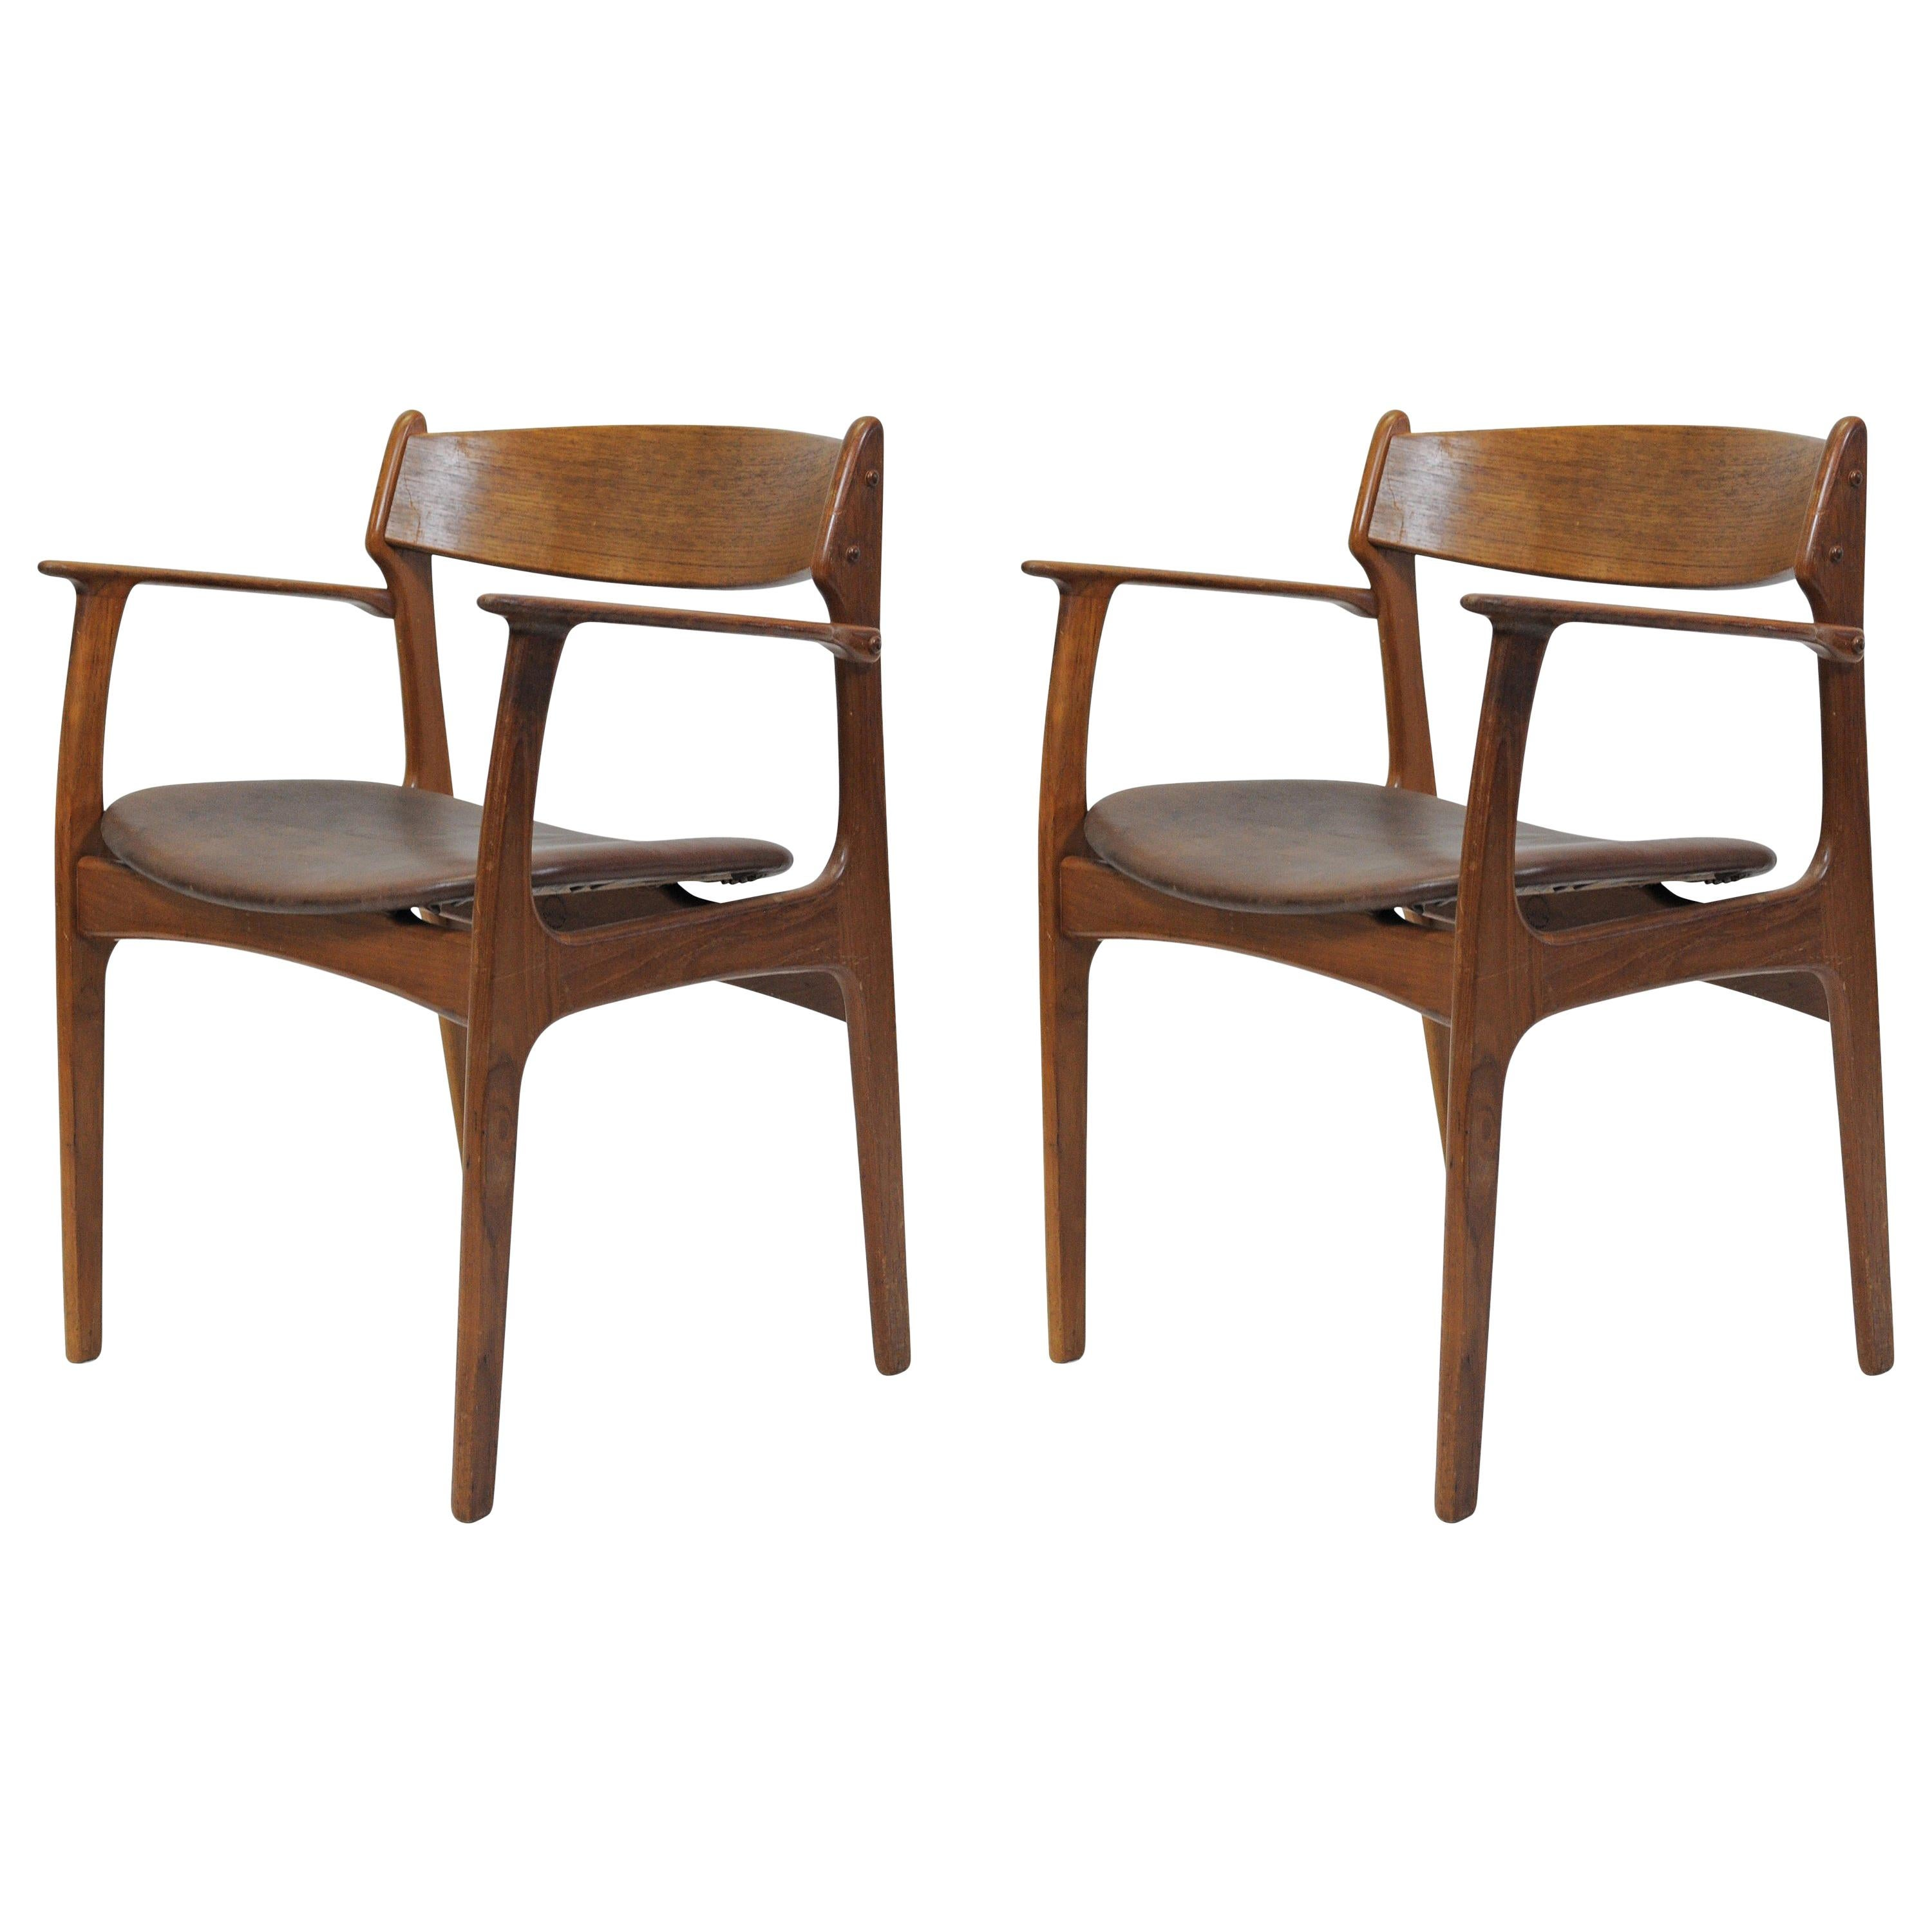 1950s Set of Two Refinished Erik Buch Armchairs in Teak, Inc Reupholstery